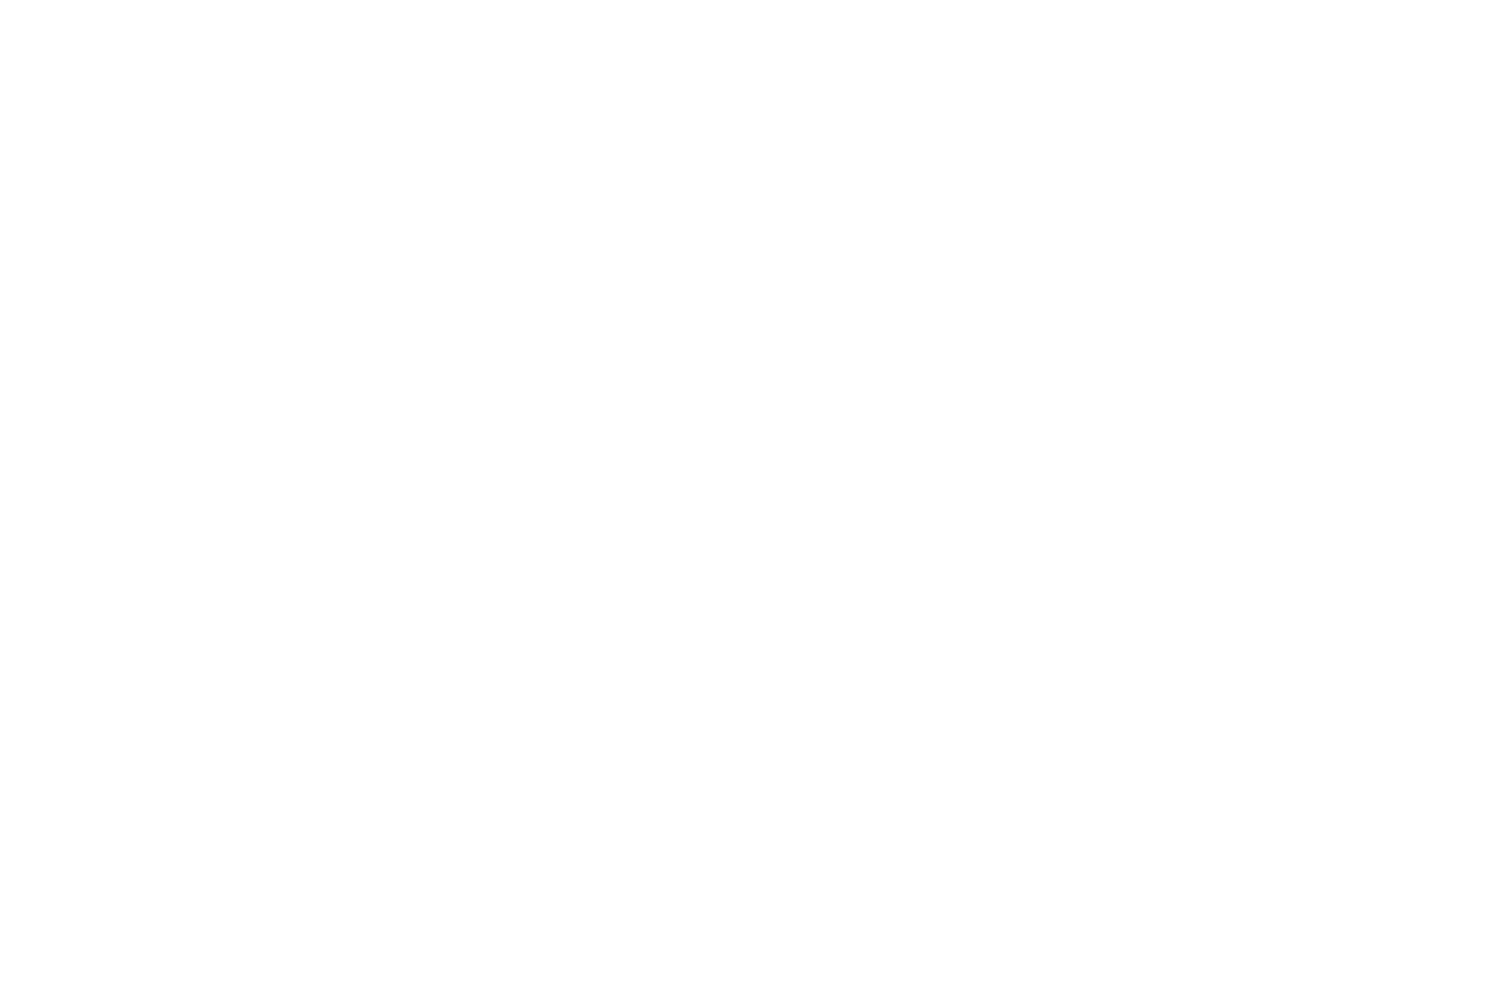 Ghost of Paul Revere